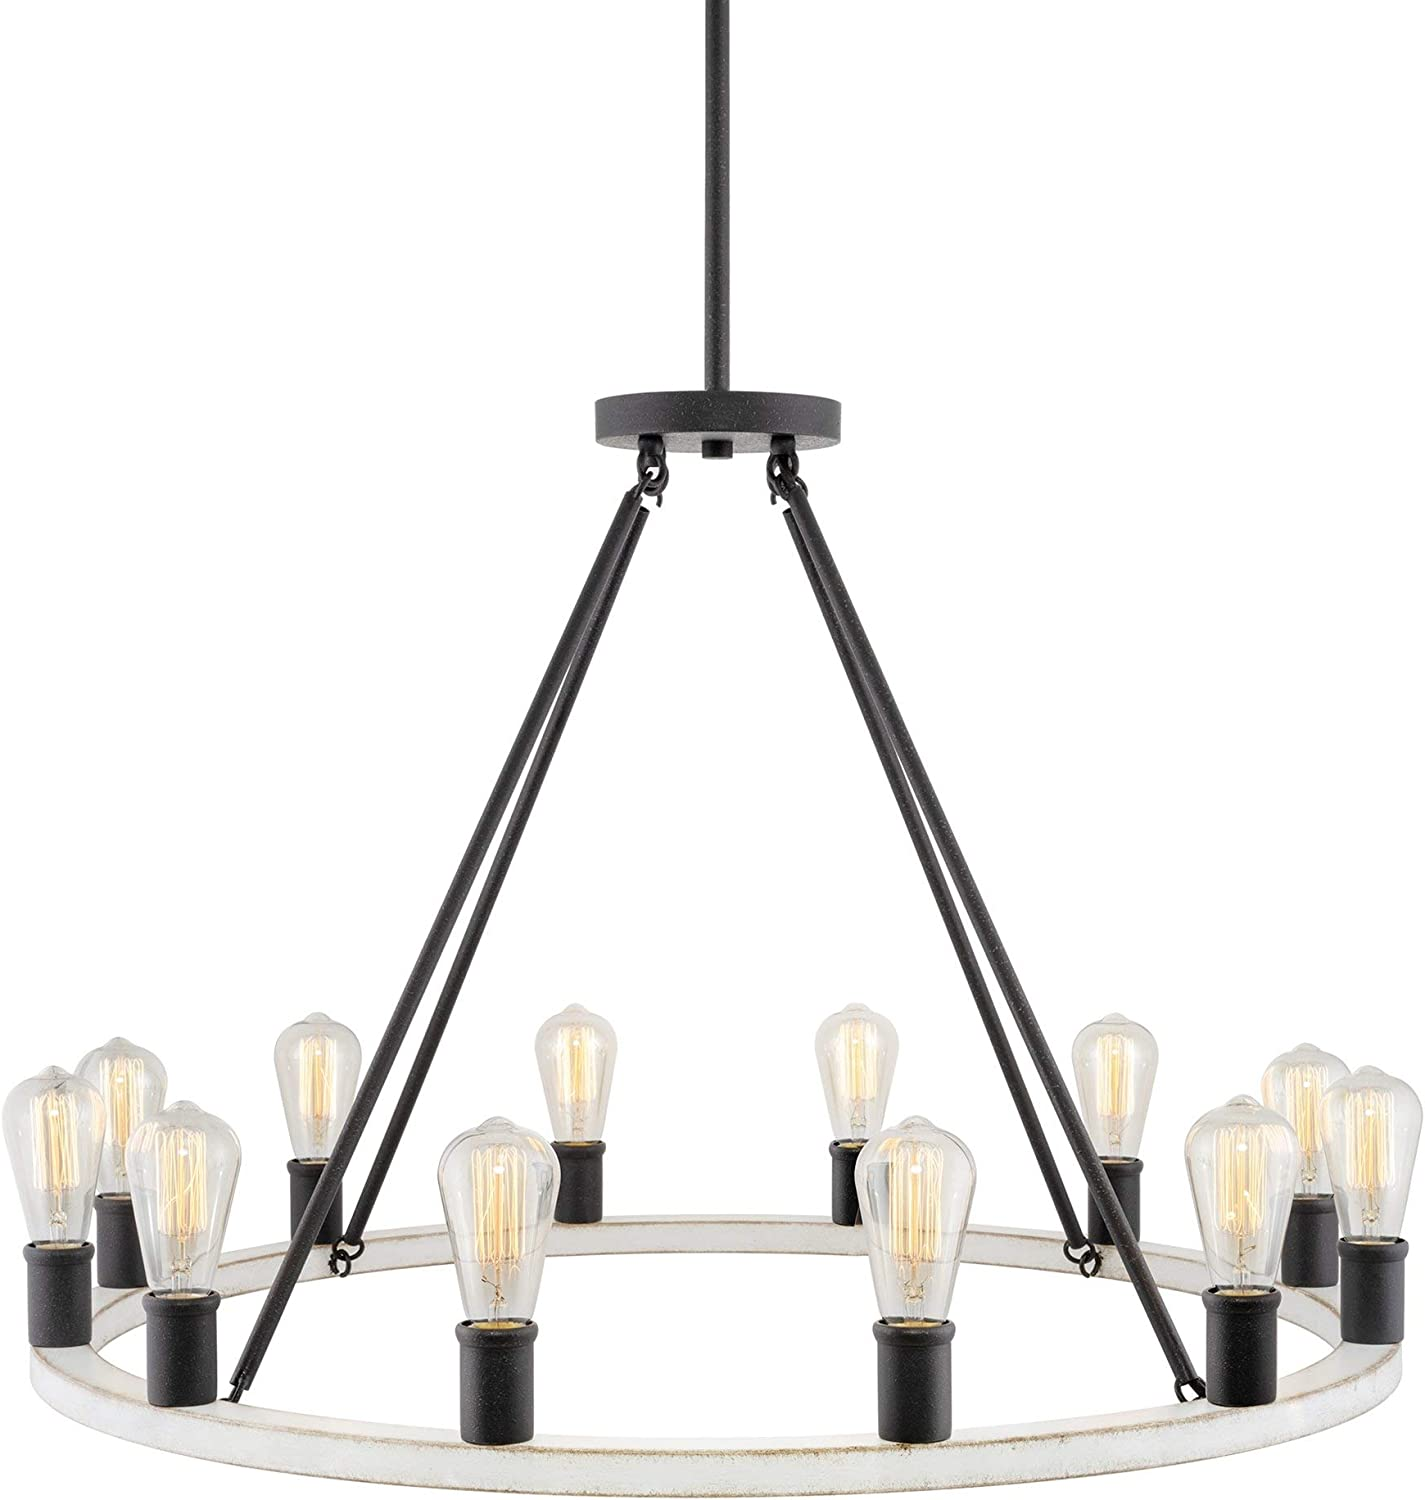 Kira Home Jericho 25 6-Light Large Industrial Rustic Farmhouse Wagon Wheel Chandelier Warm Brass Accents Round Kitchen Island Light May Include Minor Blemishes//Inconsistencies Black Finish